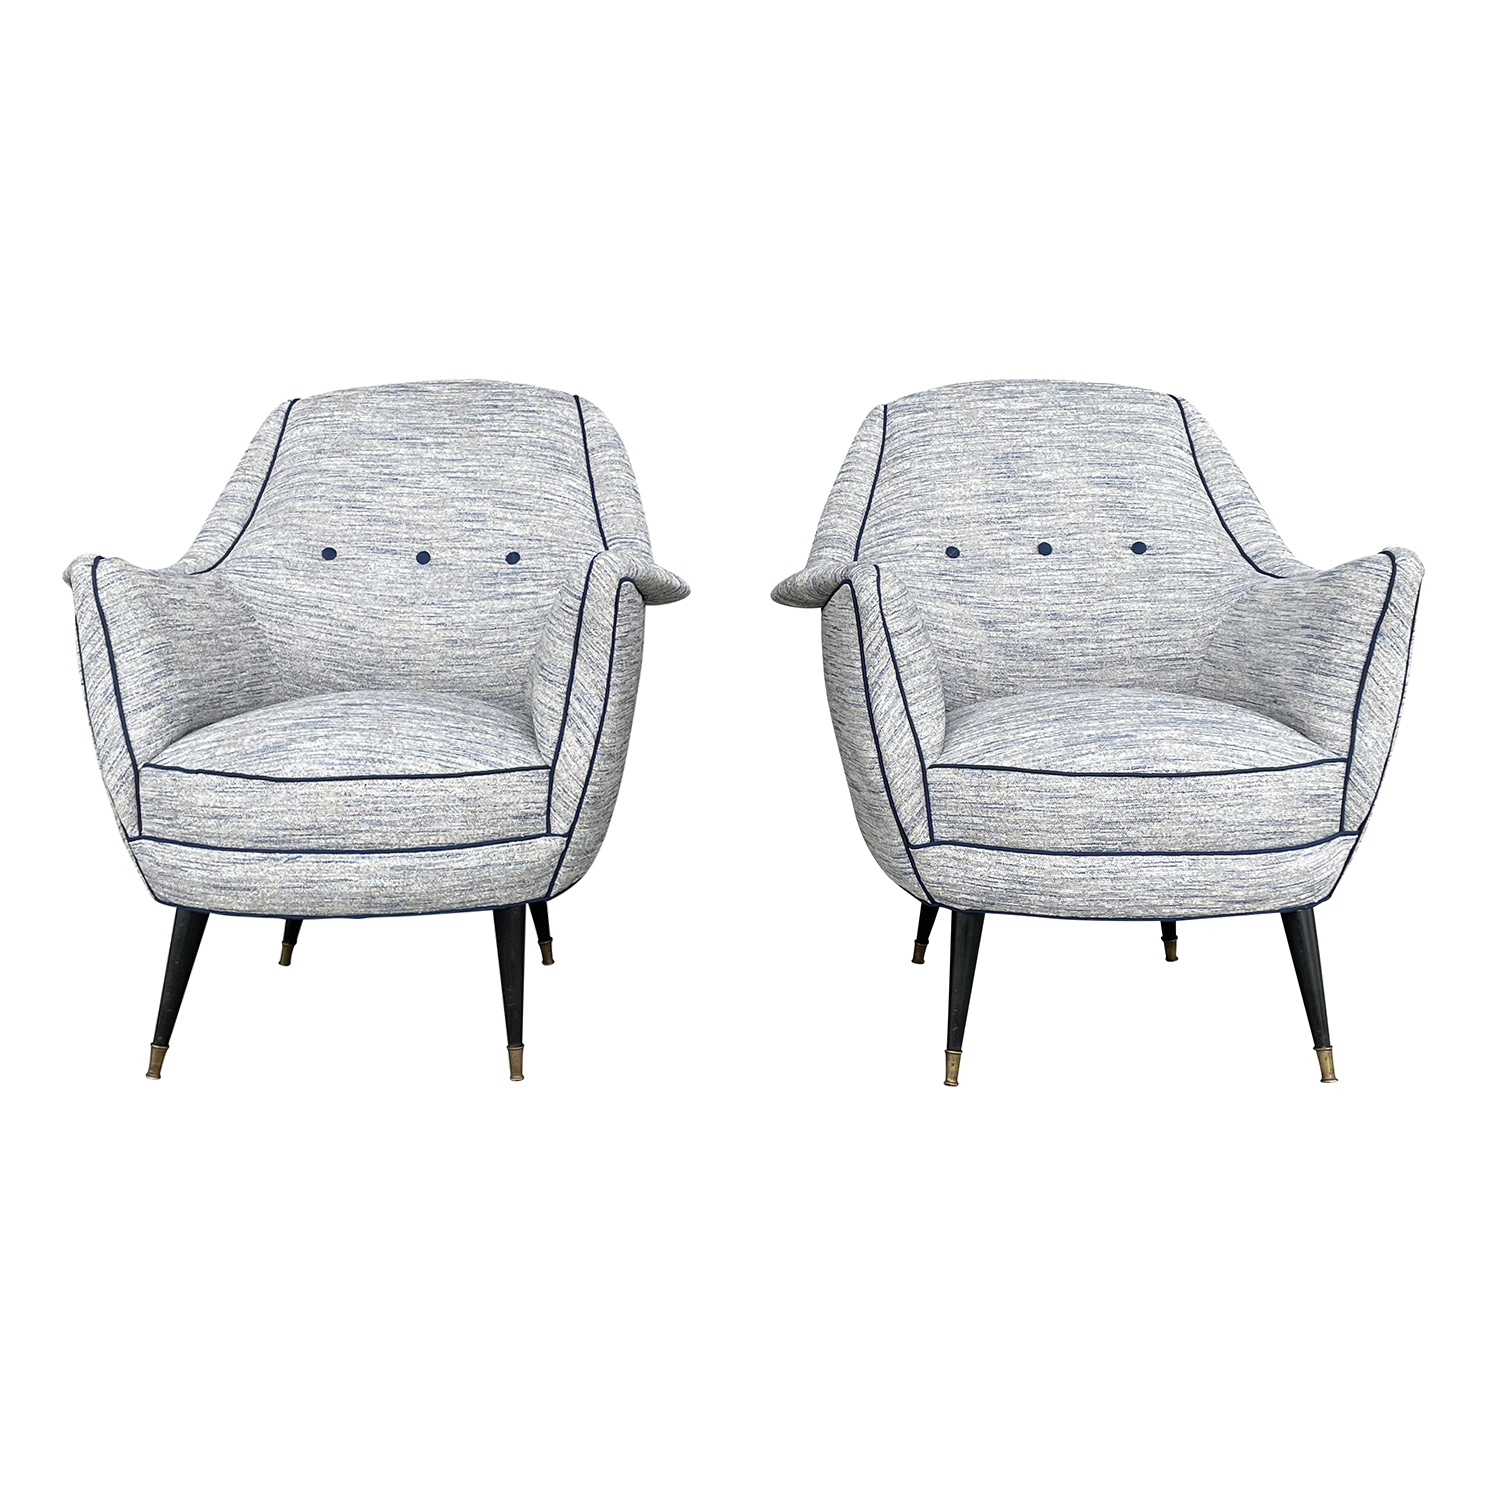 20th Century Light-Blue Italian Pair of Lounge Chairs – Armchairs by Ico Parisi